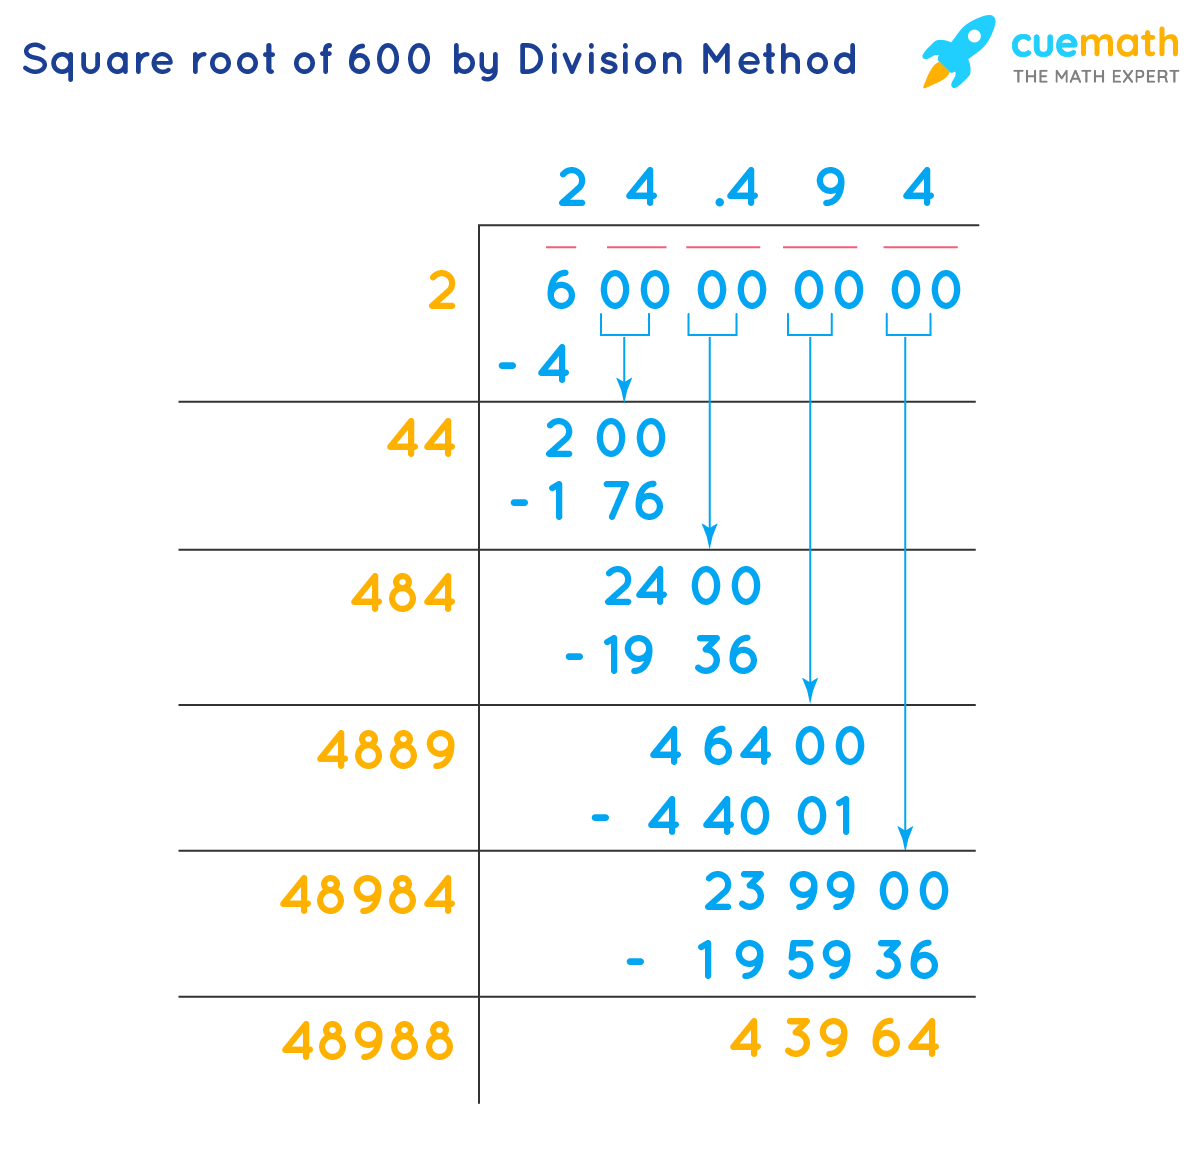 square root of 600 by division method